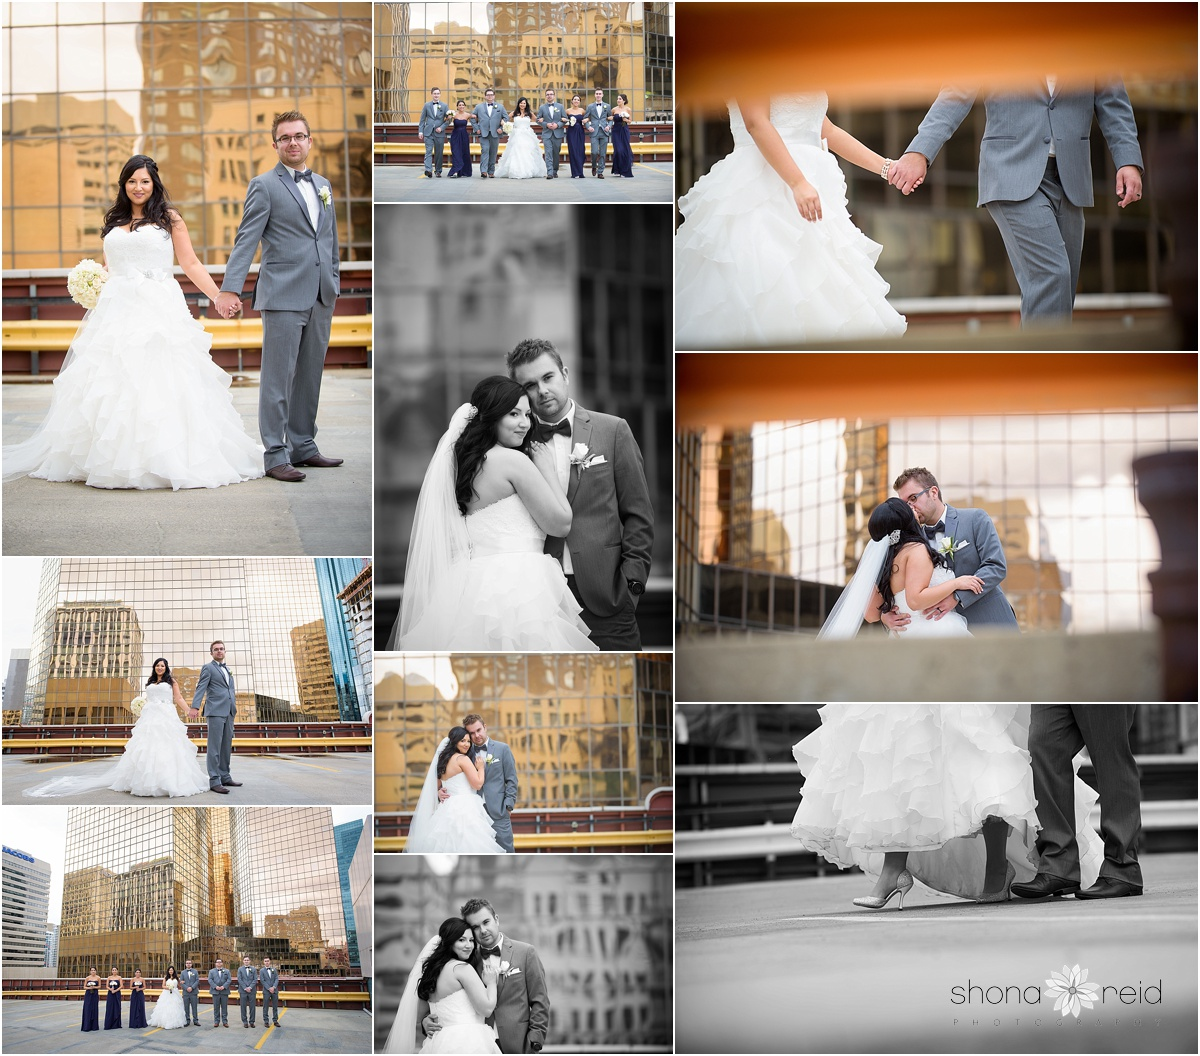 Edmonton Alberta wedding photography Bridal party